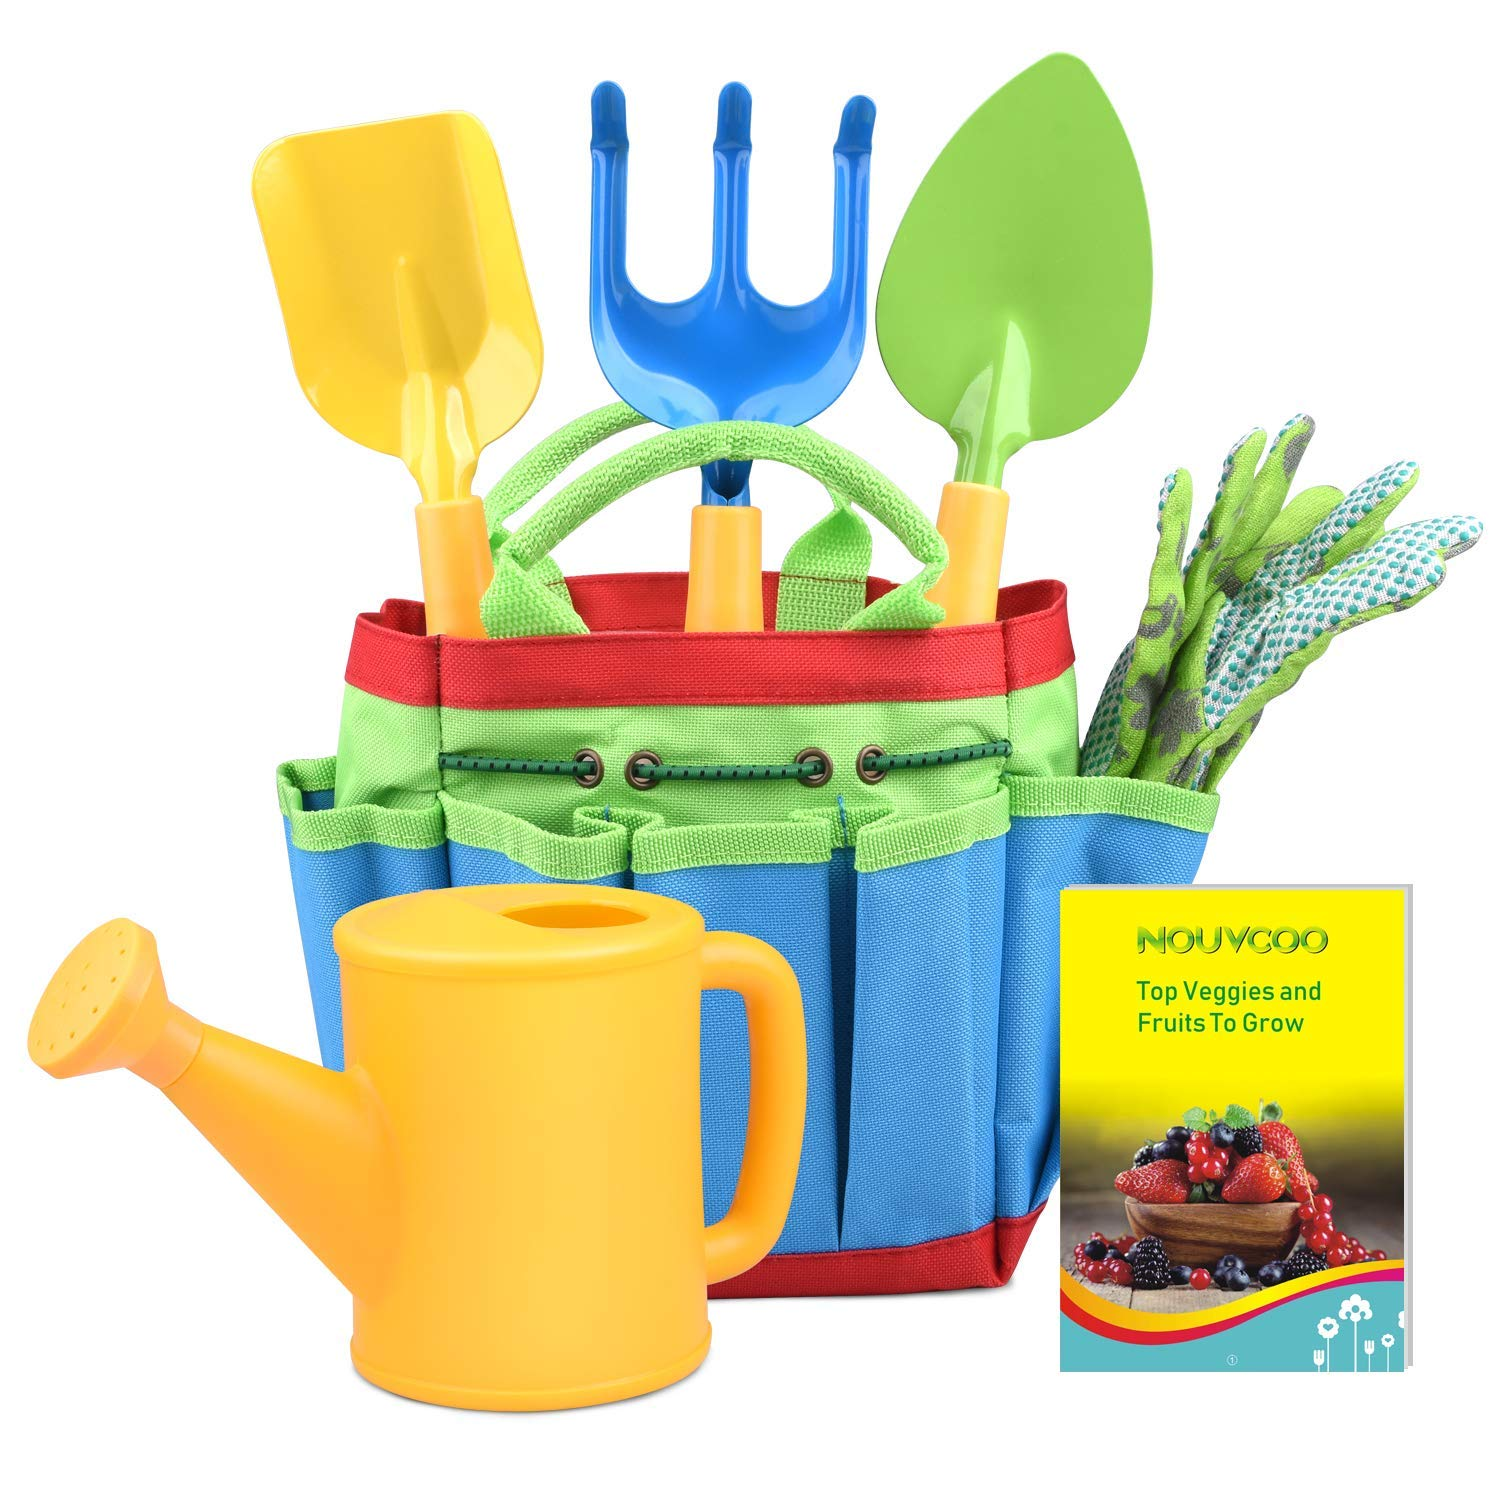 KINCREA Kids Gardening Tools, Outdoor Toys Set Gardening Set Includes Sturdy Tote Bag, Watering Can, Shovel, Rake, and…